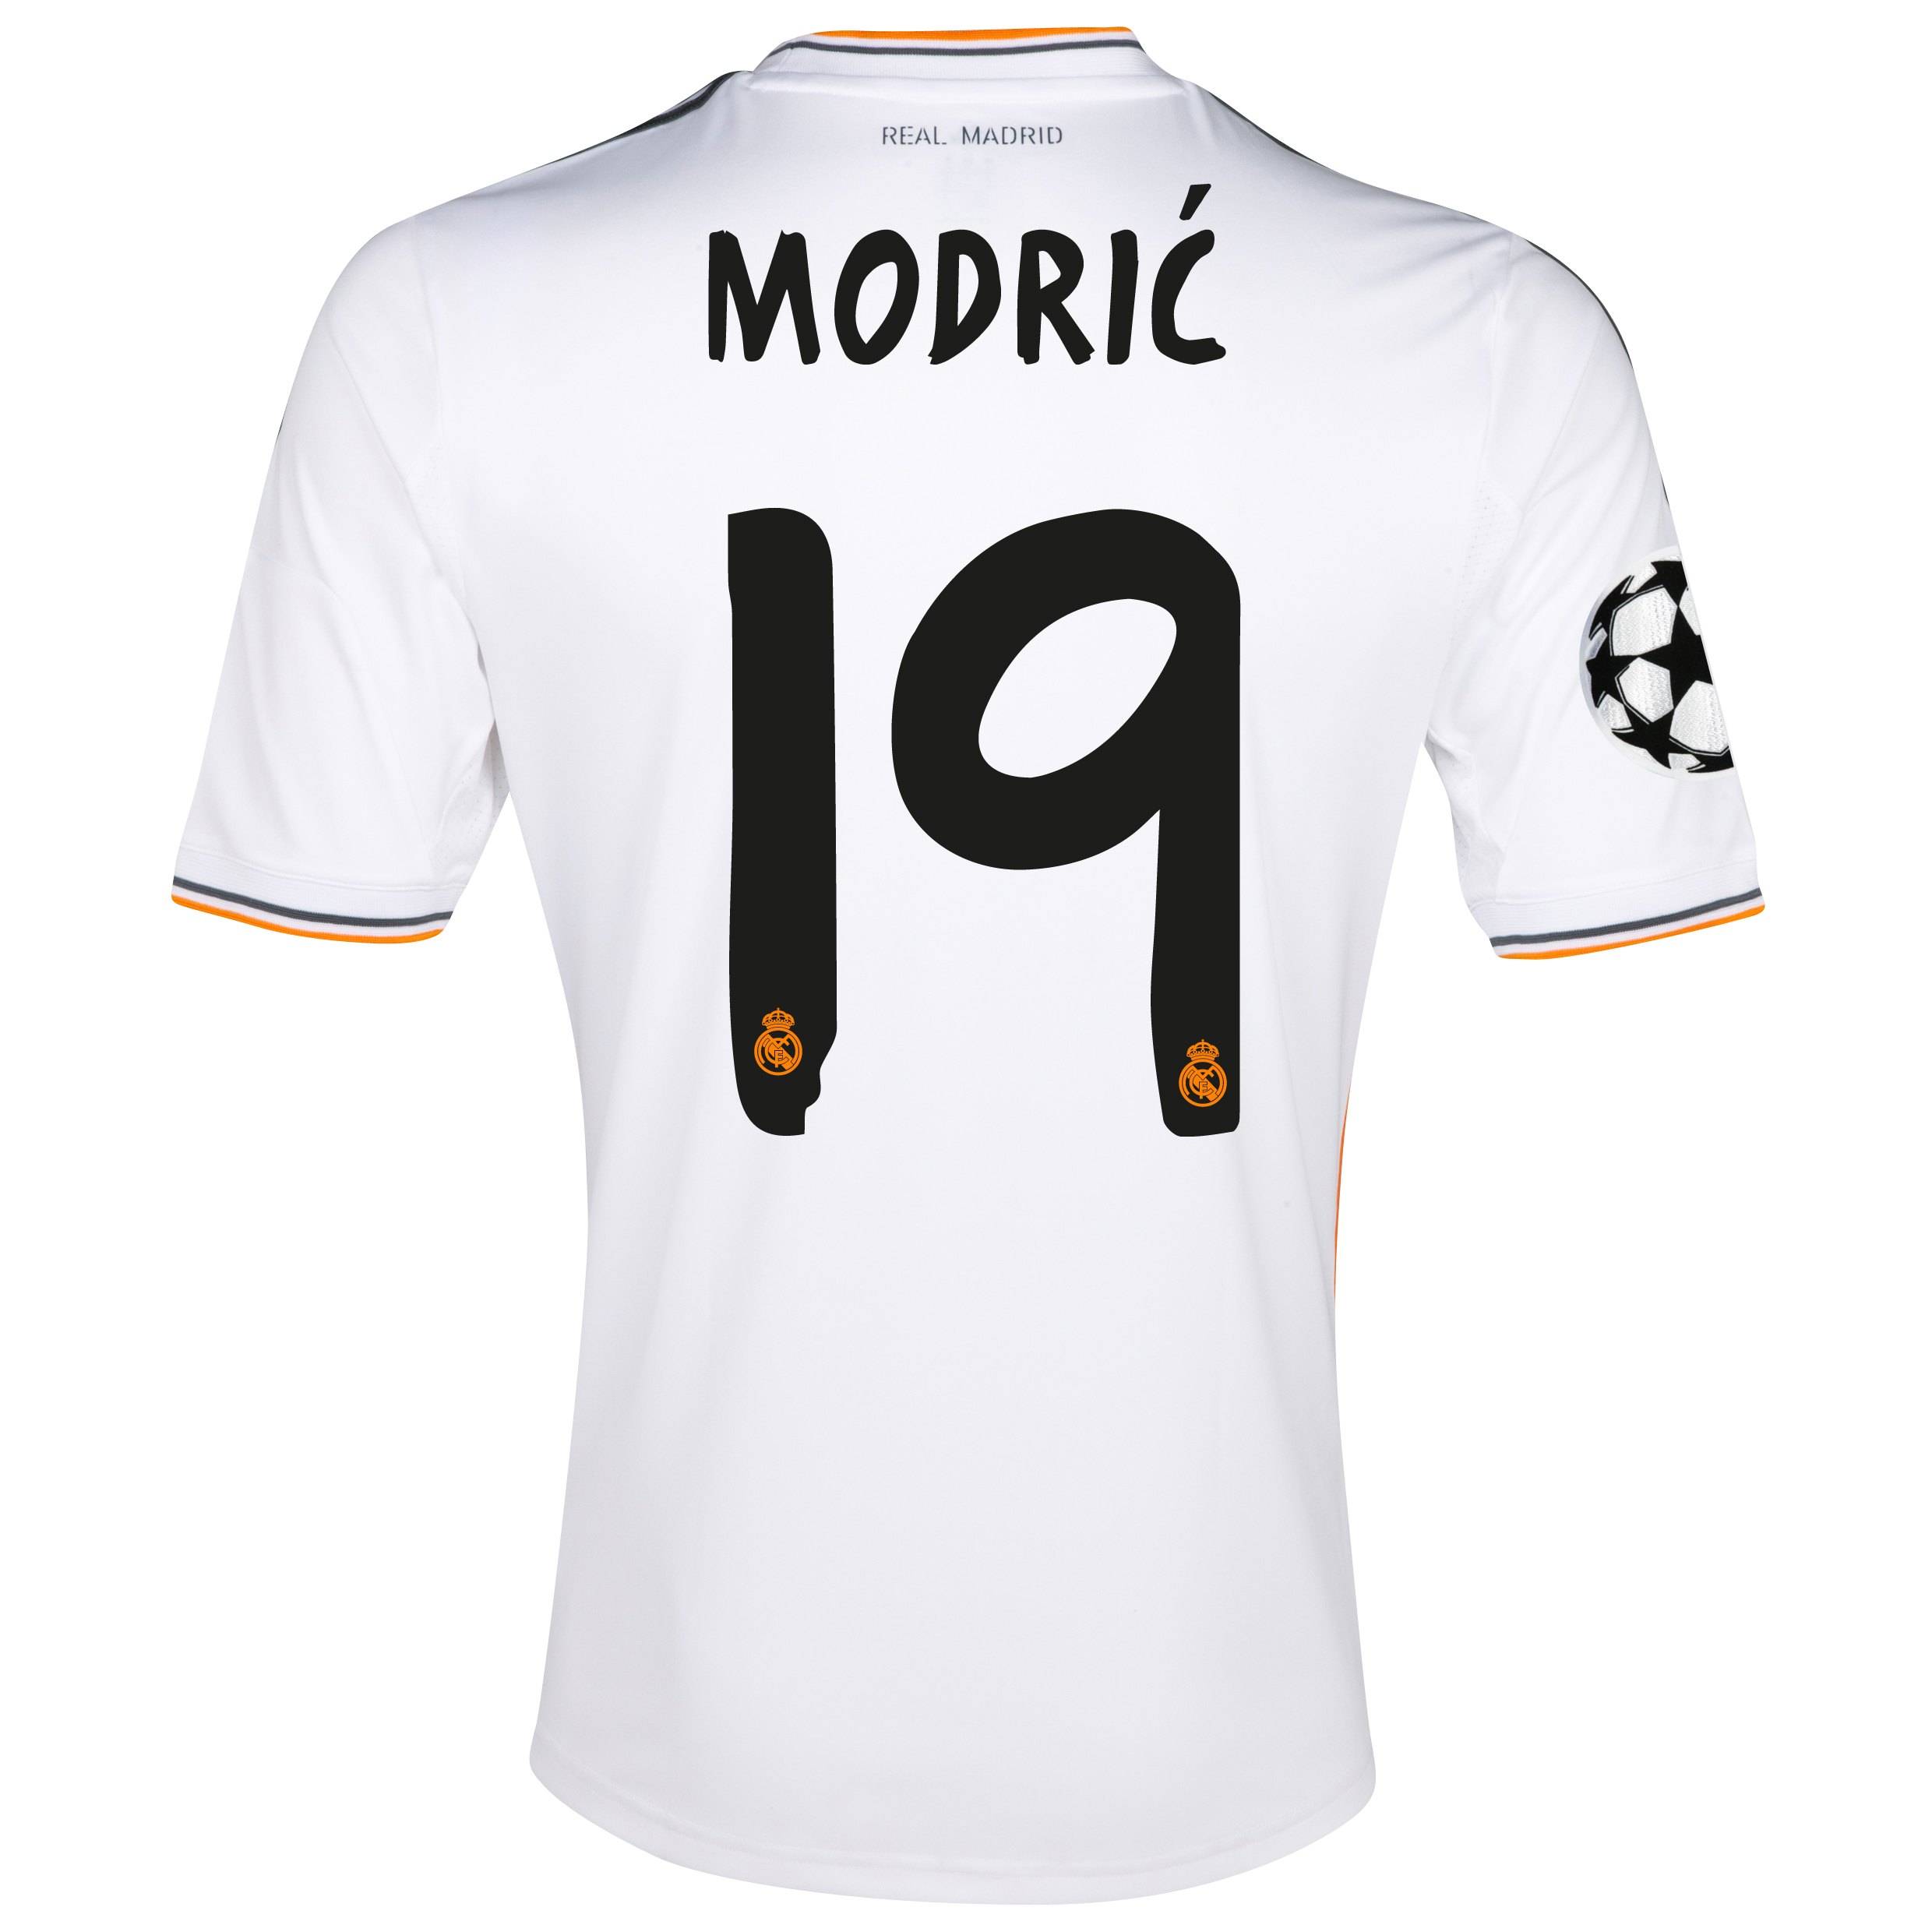 Real Madrid UEFA Champions League Home Shirt 2013/14 with Modric 19 printing